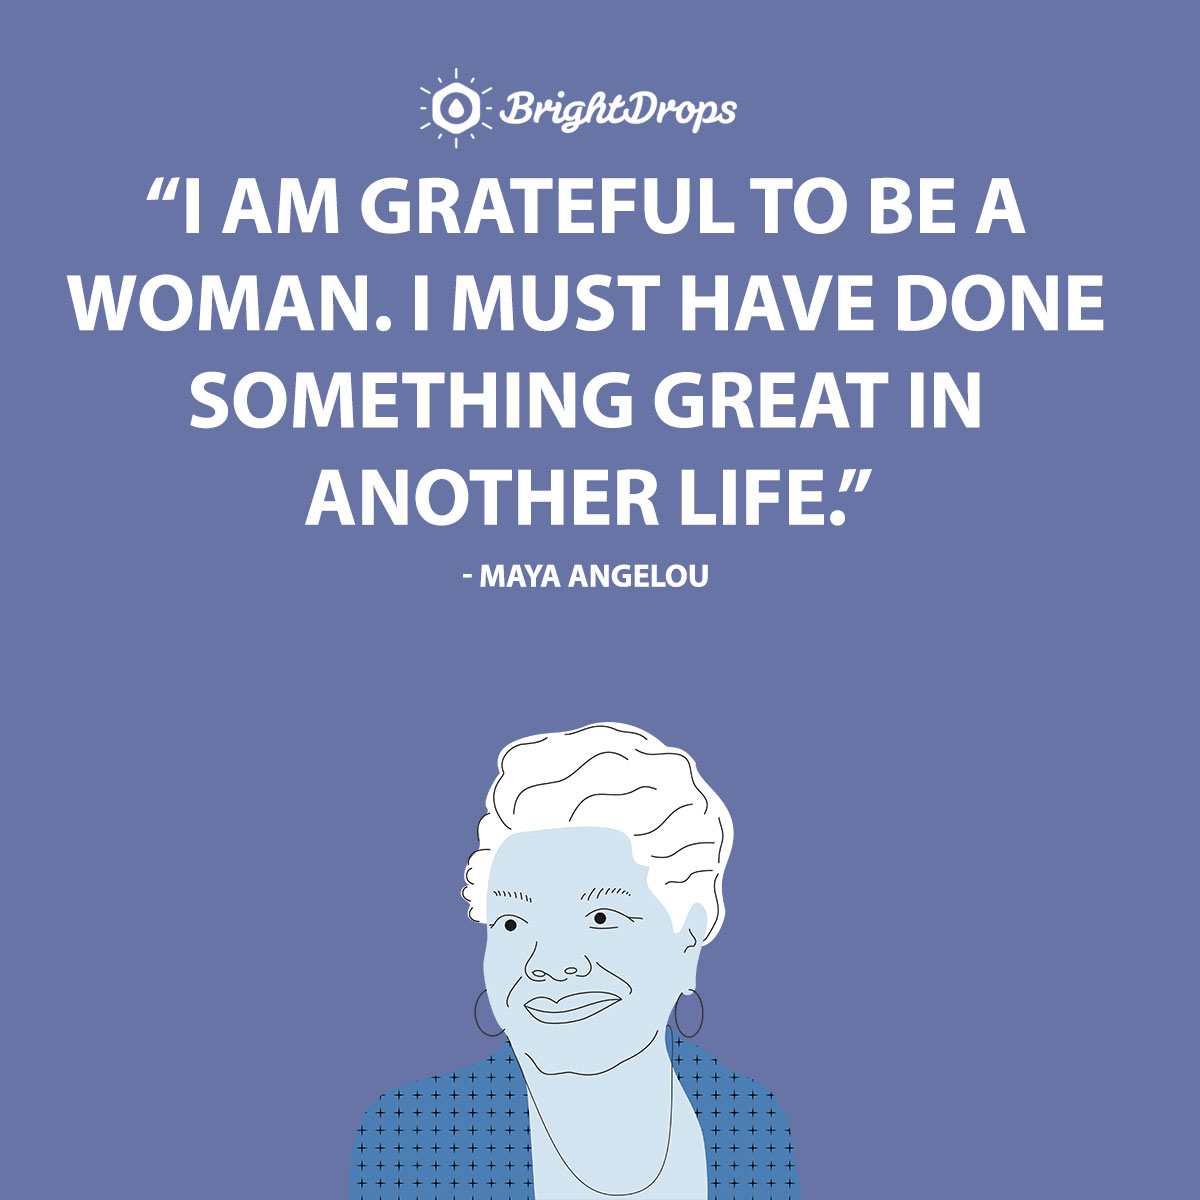 I am grateful to be a woman. I must have done something great in another life. - Maya Angelou